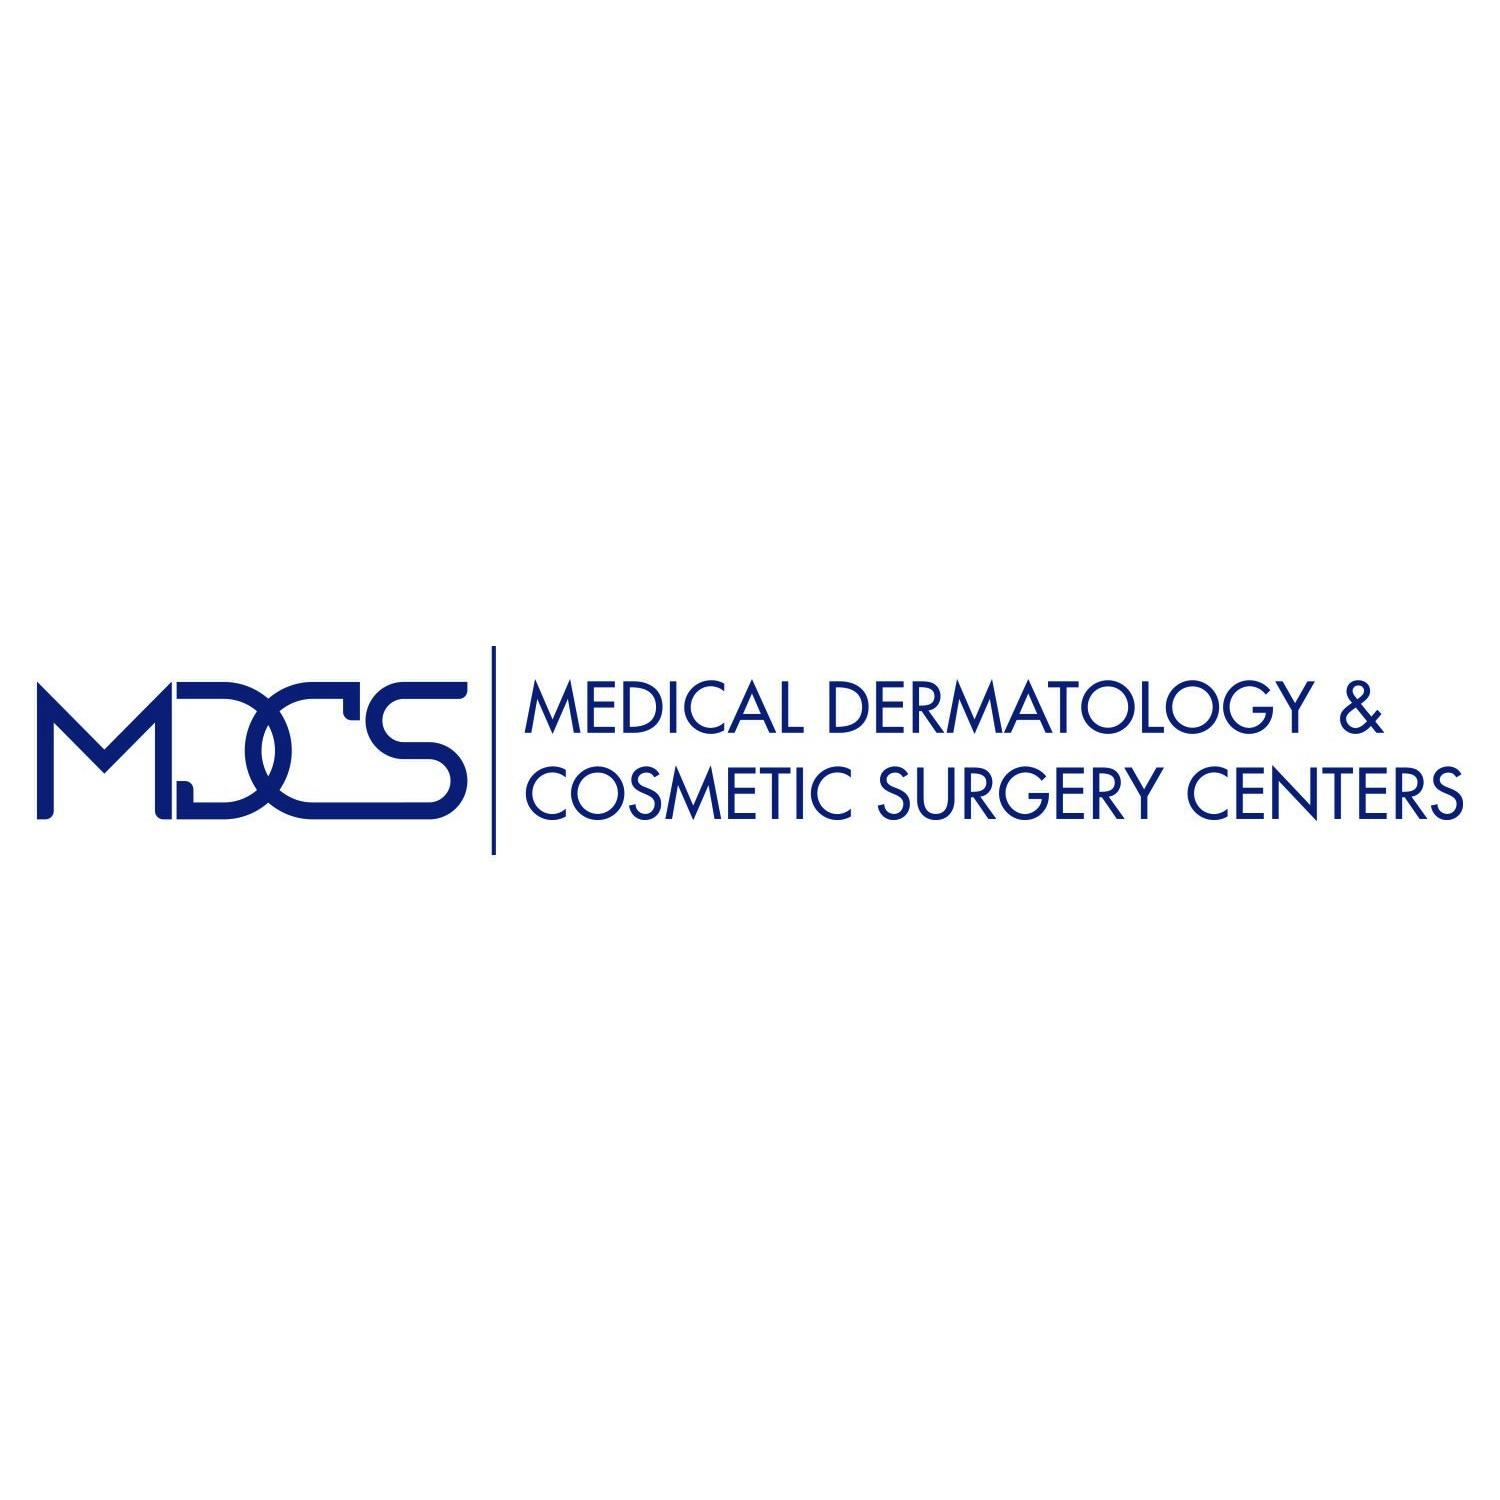 MDCS: Medical Dermatology & Cosmetic Surgery Centers image 0